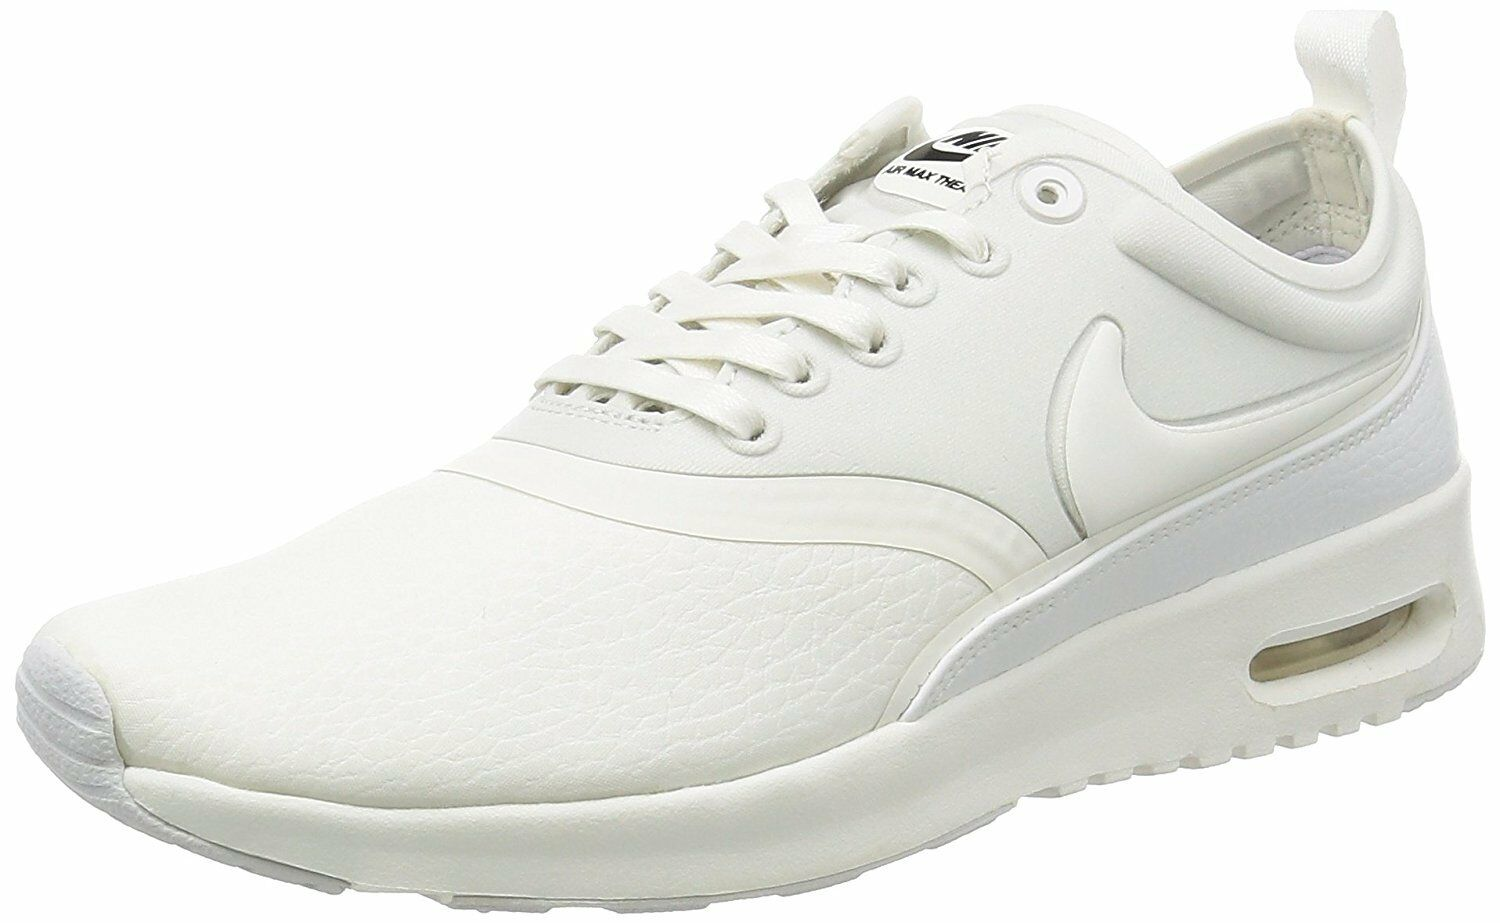 Nike Air Max Thea Ultra Prm Running Shoe 848279 100 SIZE 12 RETAIL    NEW